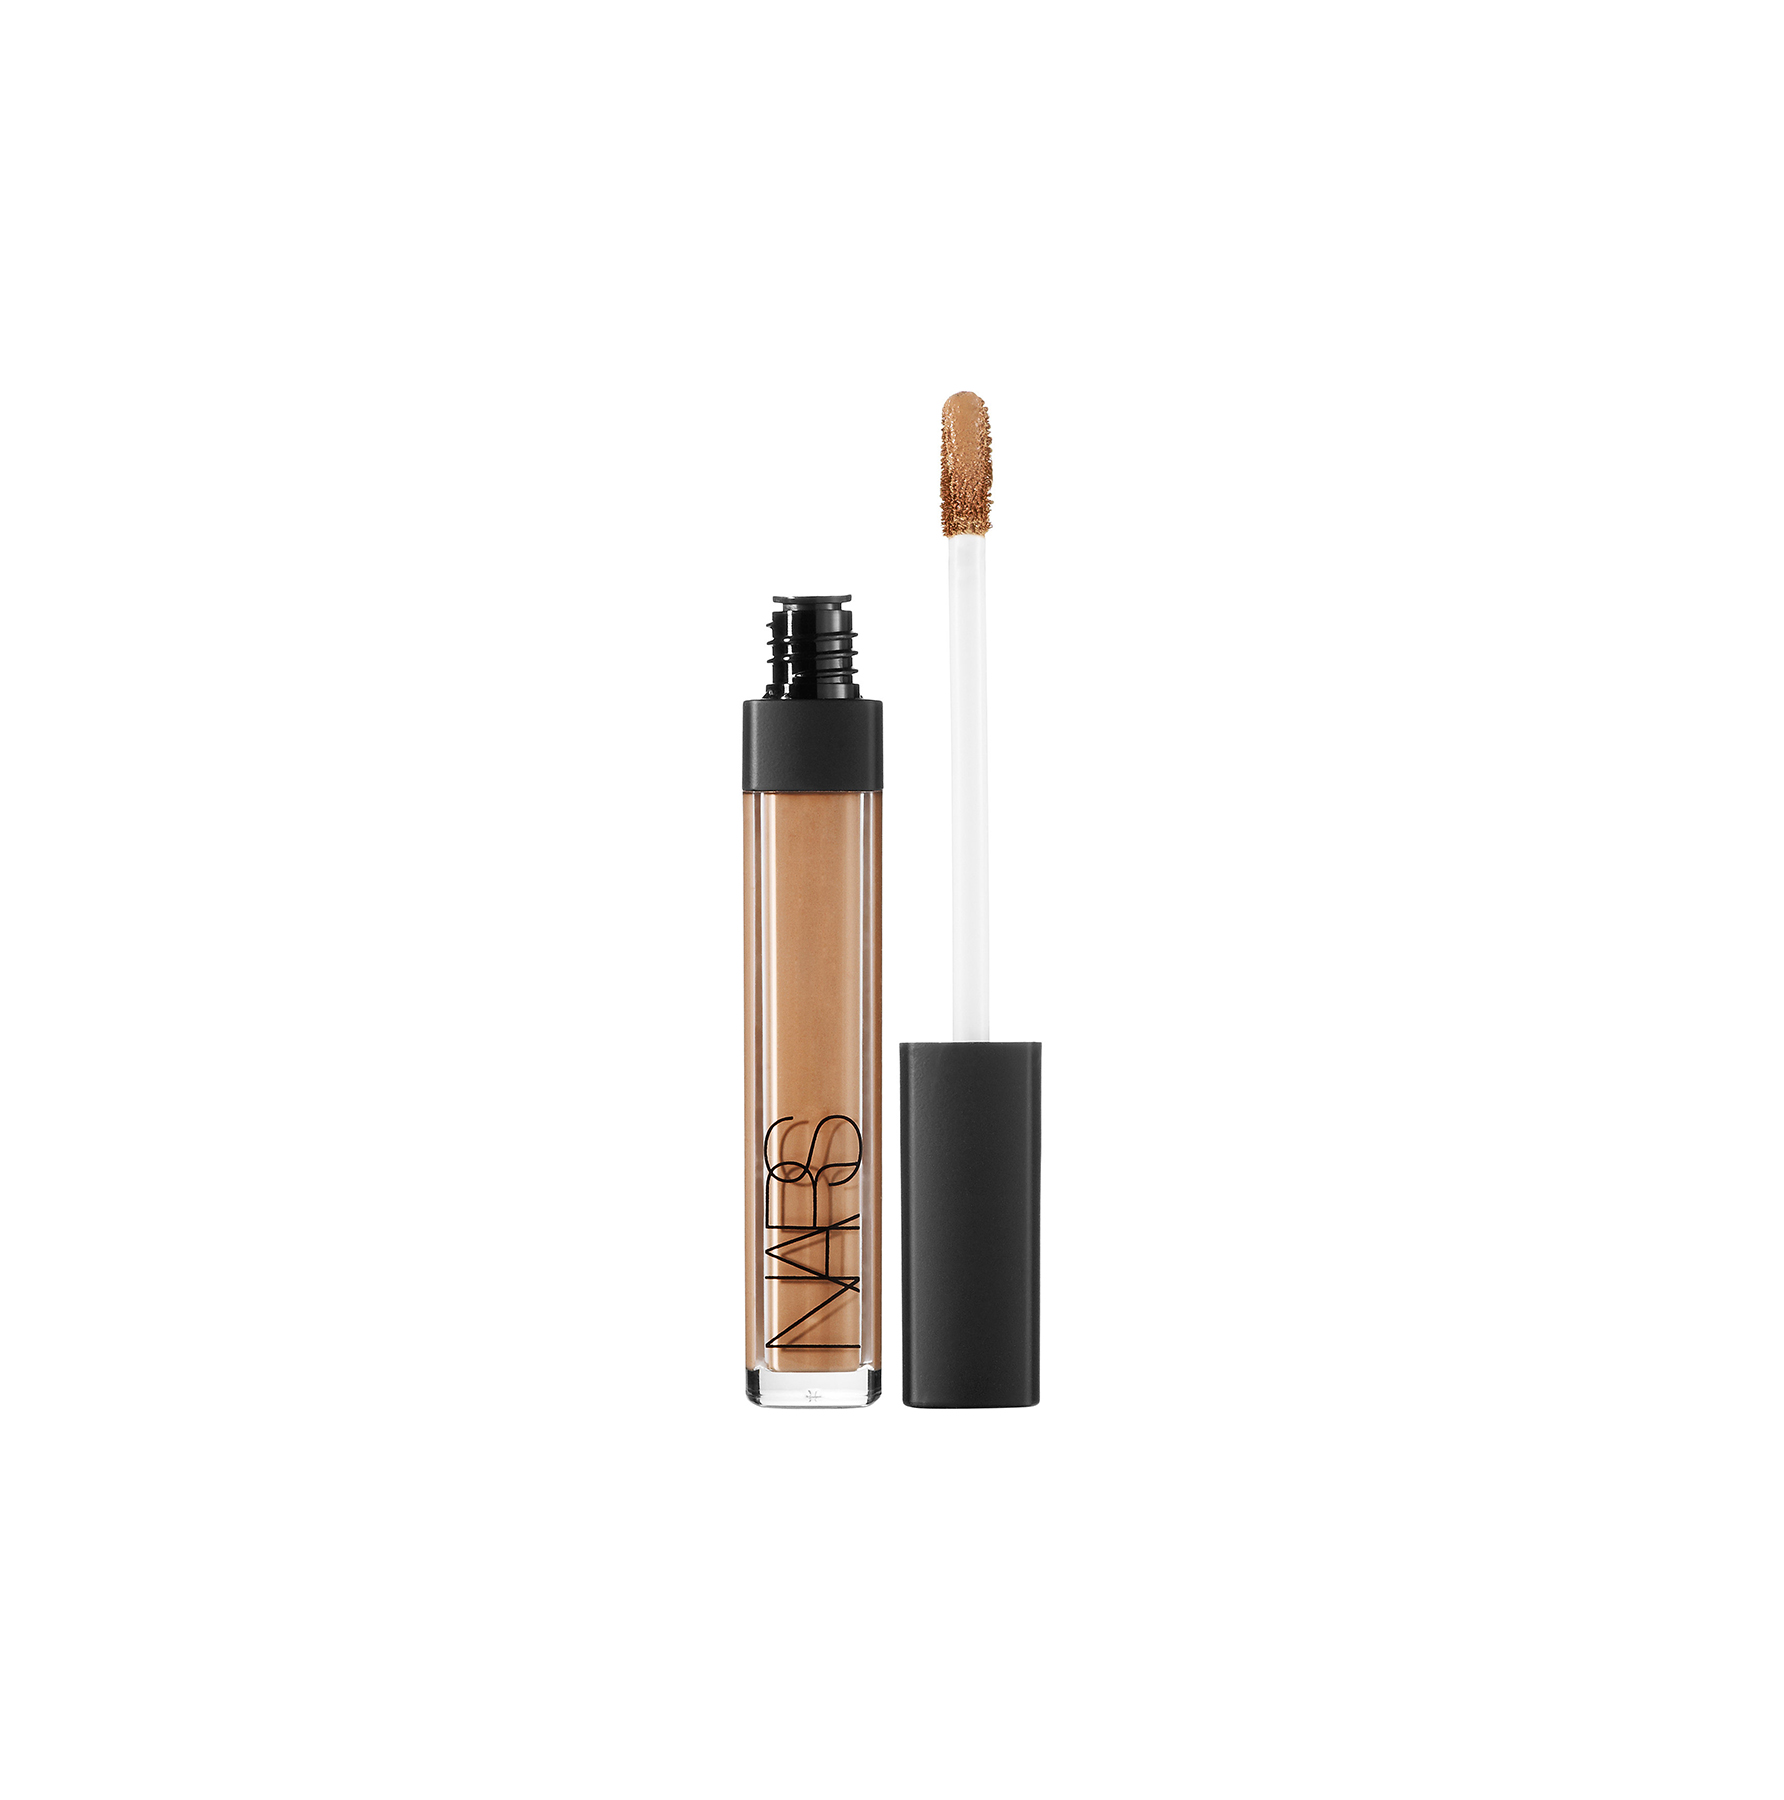 This Is the Best-Selling Concealer on Sephora.com